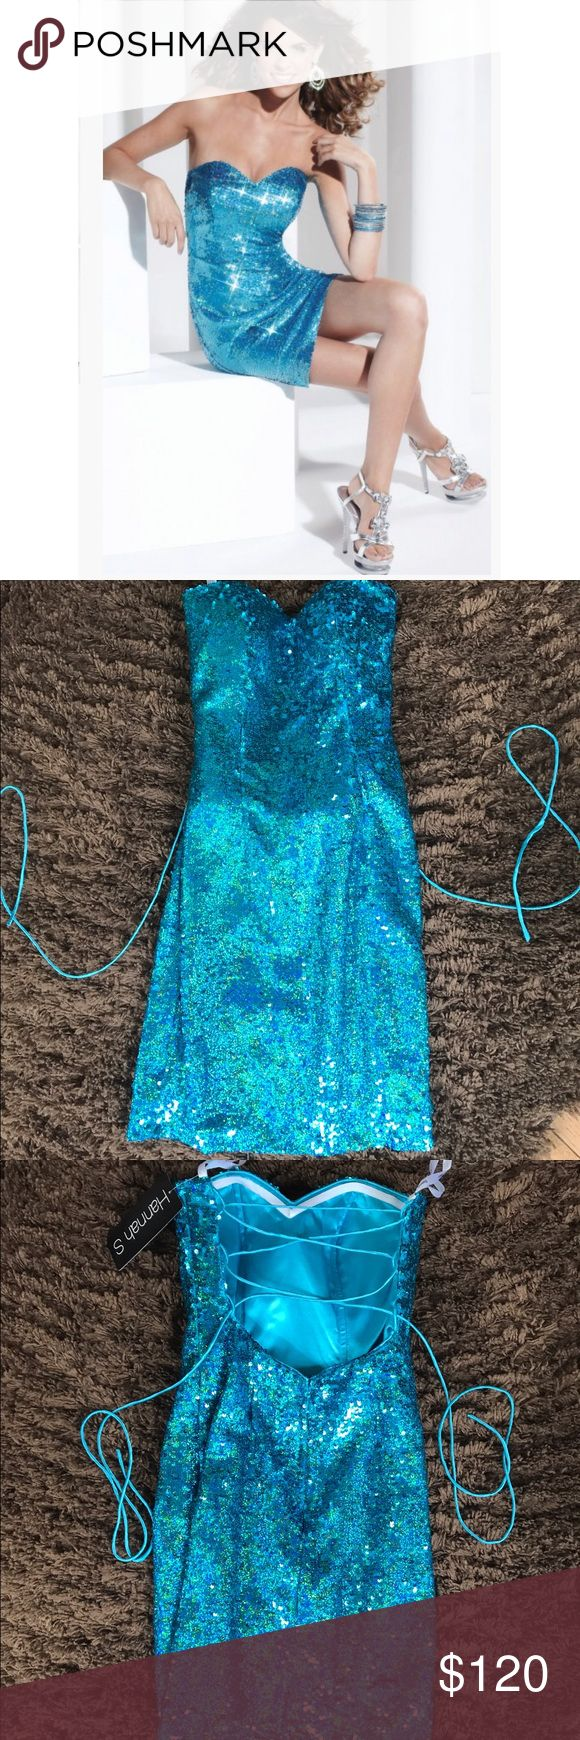 NWT! Hannah S blue sparkle short dress Hannah S sparkly blue formal dress! Size 0. NEVER WORN, still has tags attached, and in original bag. ••Shine all night in this ravishing cocktail dress by Hannah S 27771. The strapless sweetheart neckline starts this glittering style off right. Body conscious and designed to show off your curves, this fantastic dress is covered in shimmering sequin embellishments and meets above the knee. Has NO jewels missing, marks, and has NO flaws! Would love to…